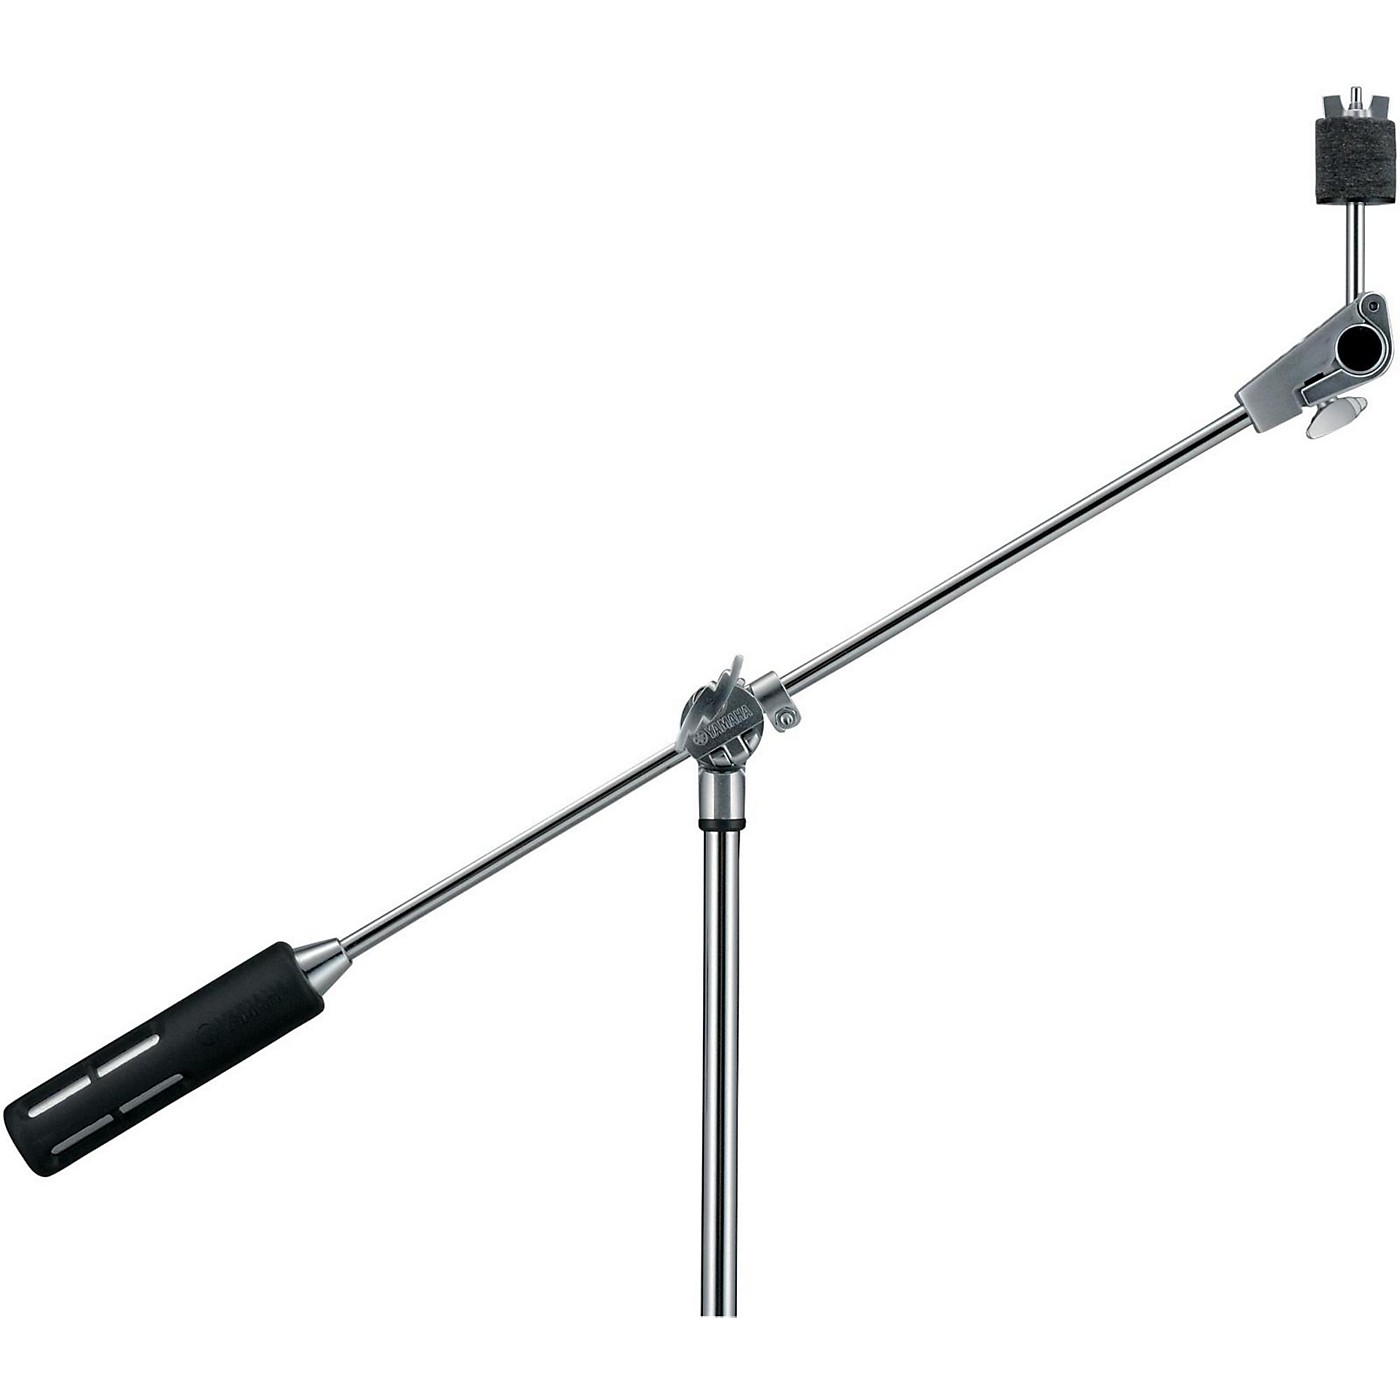 Yamaha CS-BW Boom Arm with Removeable Weight and Infinite Adjustment Tilter thumbnail